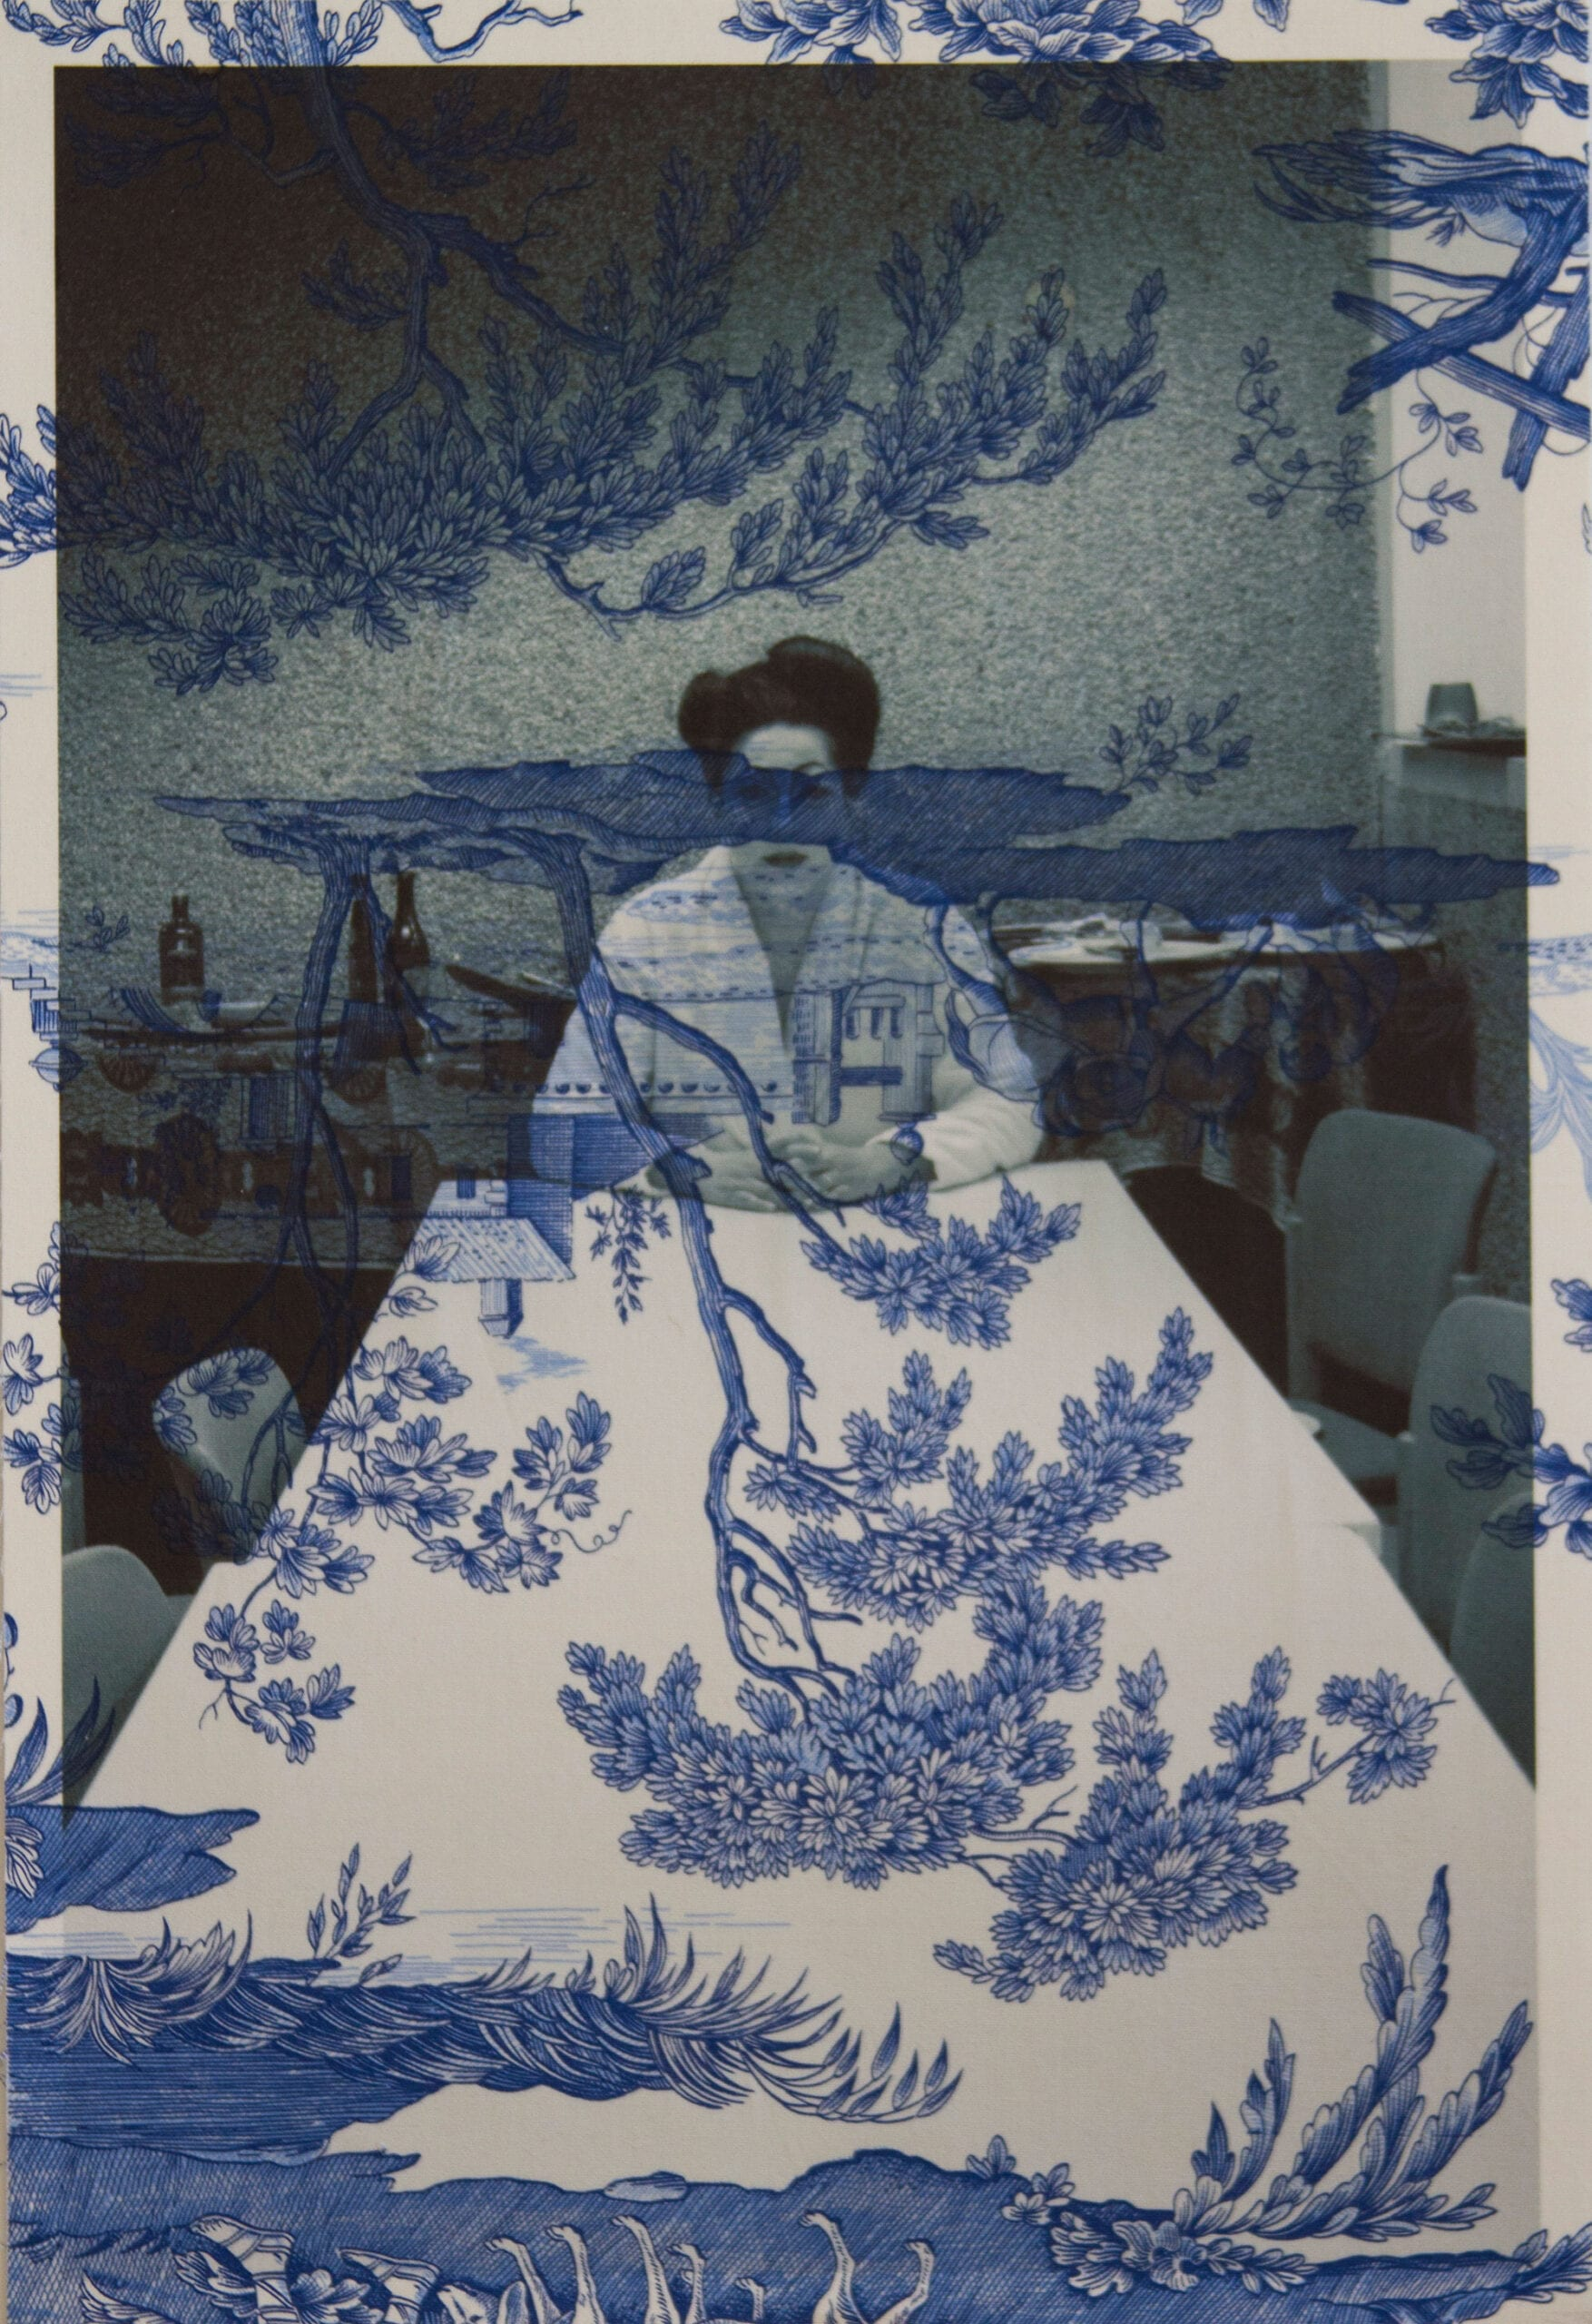 "Tim Hailand, Marina Abramovic backstage Antwerp (on blue mythical toile), digital pigment print on patterned toile de Jouy fabric, 19"" x 13"", unique print, 2012"